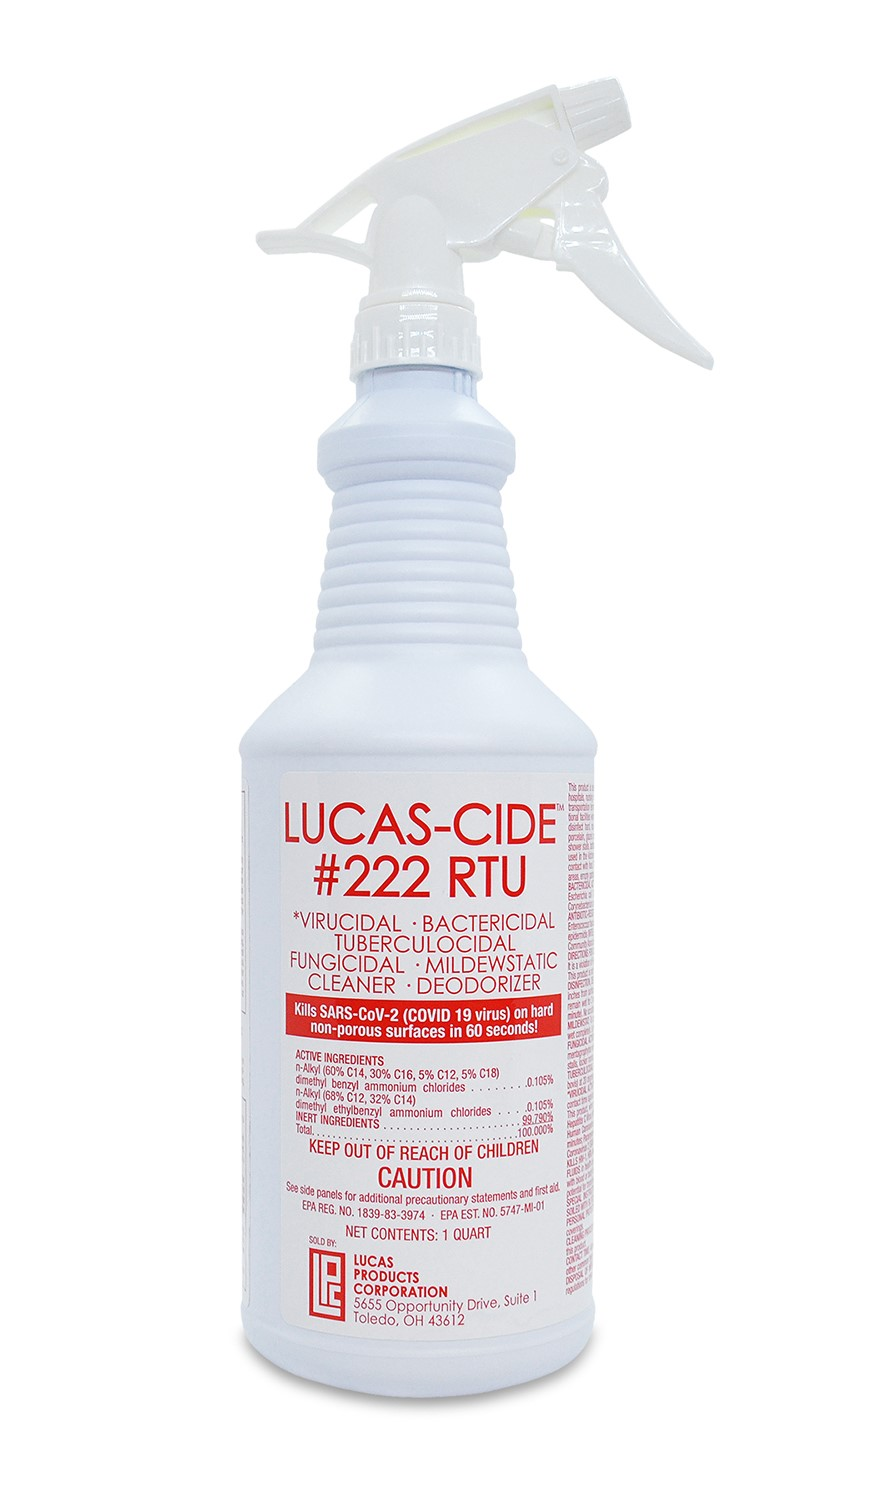 Hospital-Grade Disinfectant Kills Covid-19 in 60 Seconds:  Lucas-Cide #222 RTU